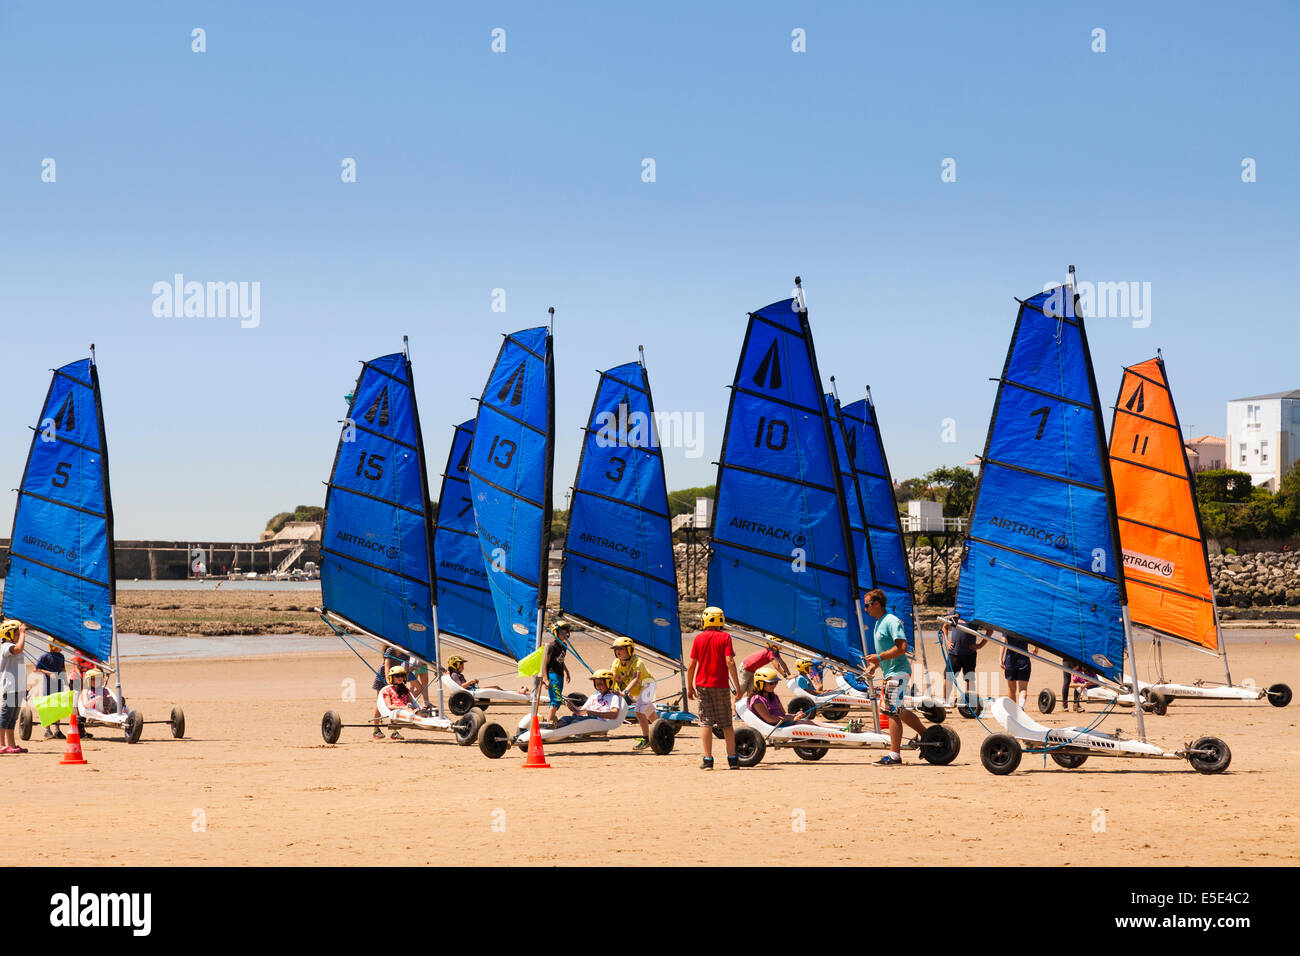 Group of children learning sand yachting on a beach. - Stock Image